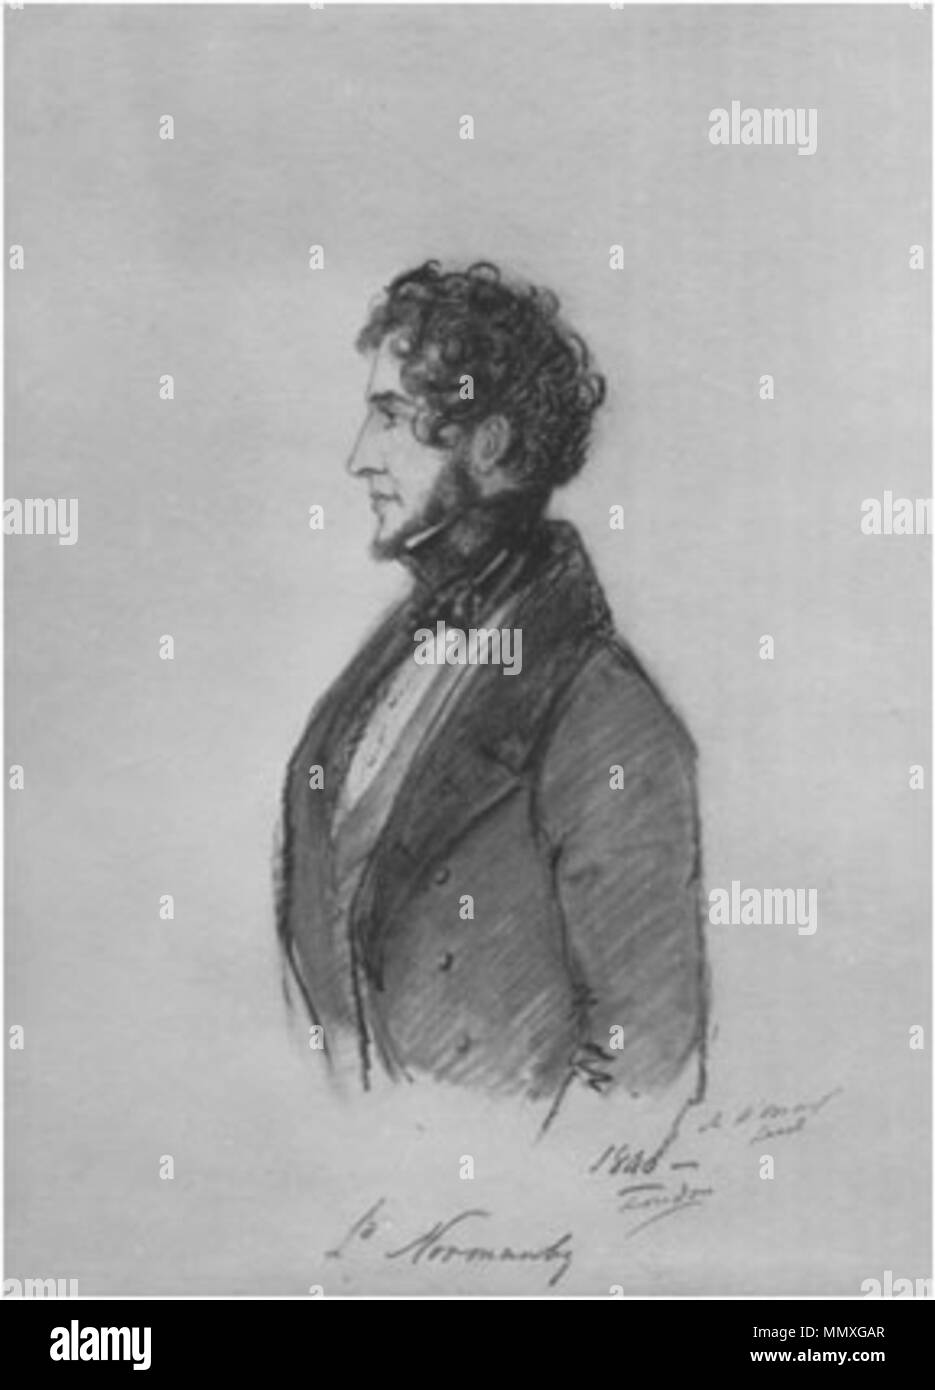 . Constantine Phipps, 1st Marquess of Normanby (1797-1863)  . 1840.   Alfred d'Orsay  (1801–1852)     Description French illustrator, painter, sculptor and soldier  Date of birth/death 4 September 1801 4 August 1852  Location of birth/death Paris Chambourcy  Work period 1829-1852  Work location London  Authority control  : Q2622452 VIAF:?5713031 ISNI:?0000 0000 8353 3056 ULAN:?500007024 LCCN:?n97013875 GND:?117606200 WorldCat 1stMarquessOfNormanby - Stock Image